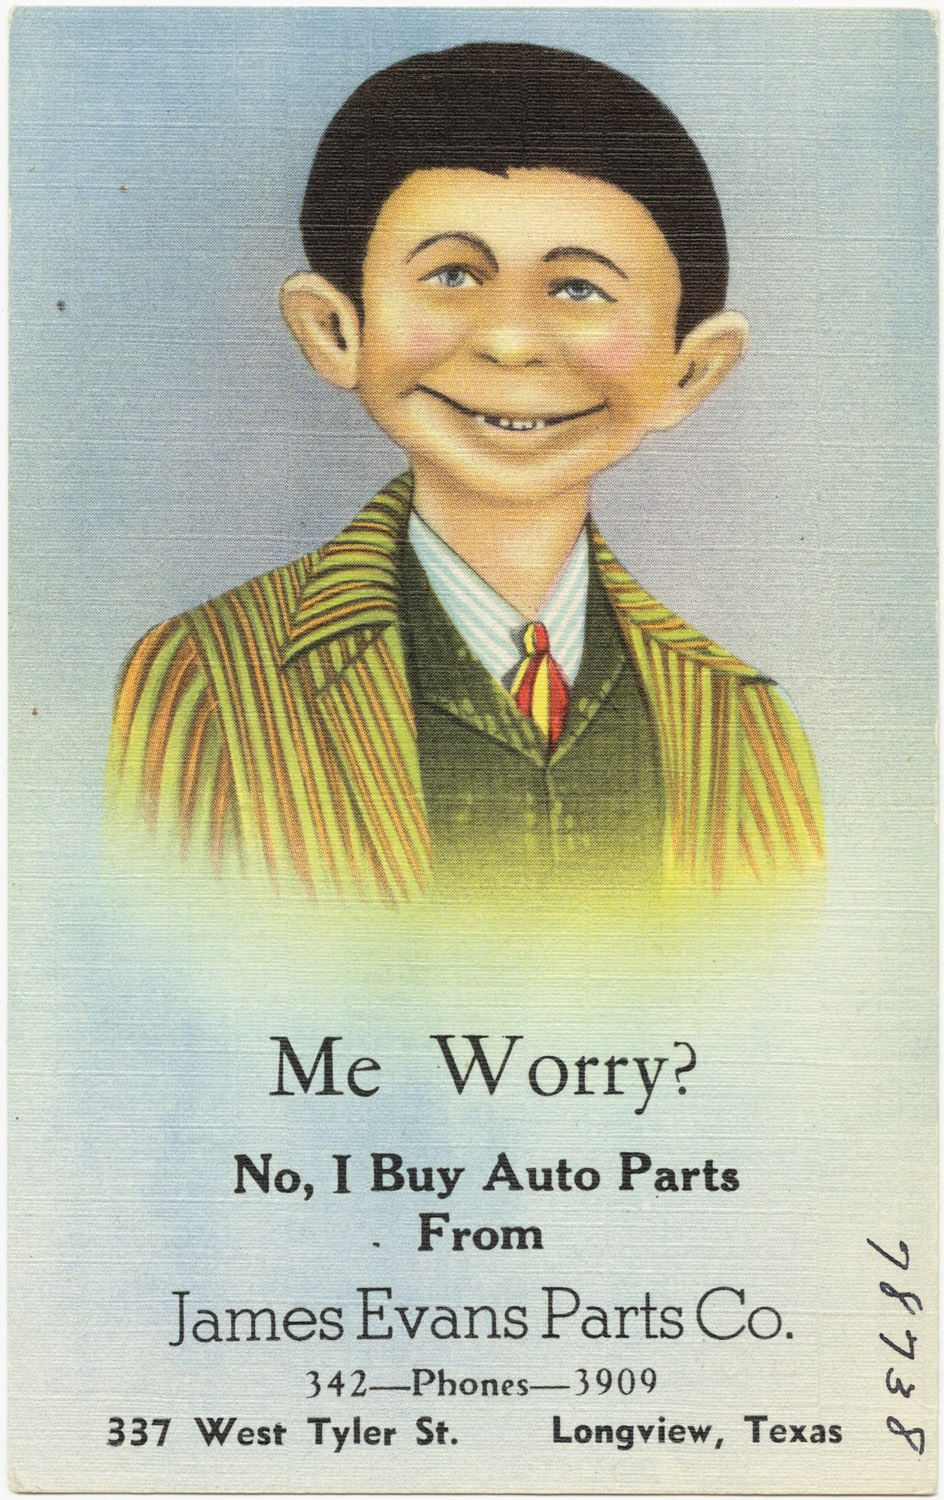 Me worry? No, I buy auto parts from James Evans Parts Co., 337 West Tyler St., Longview, Texas